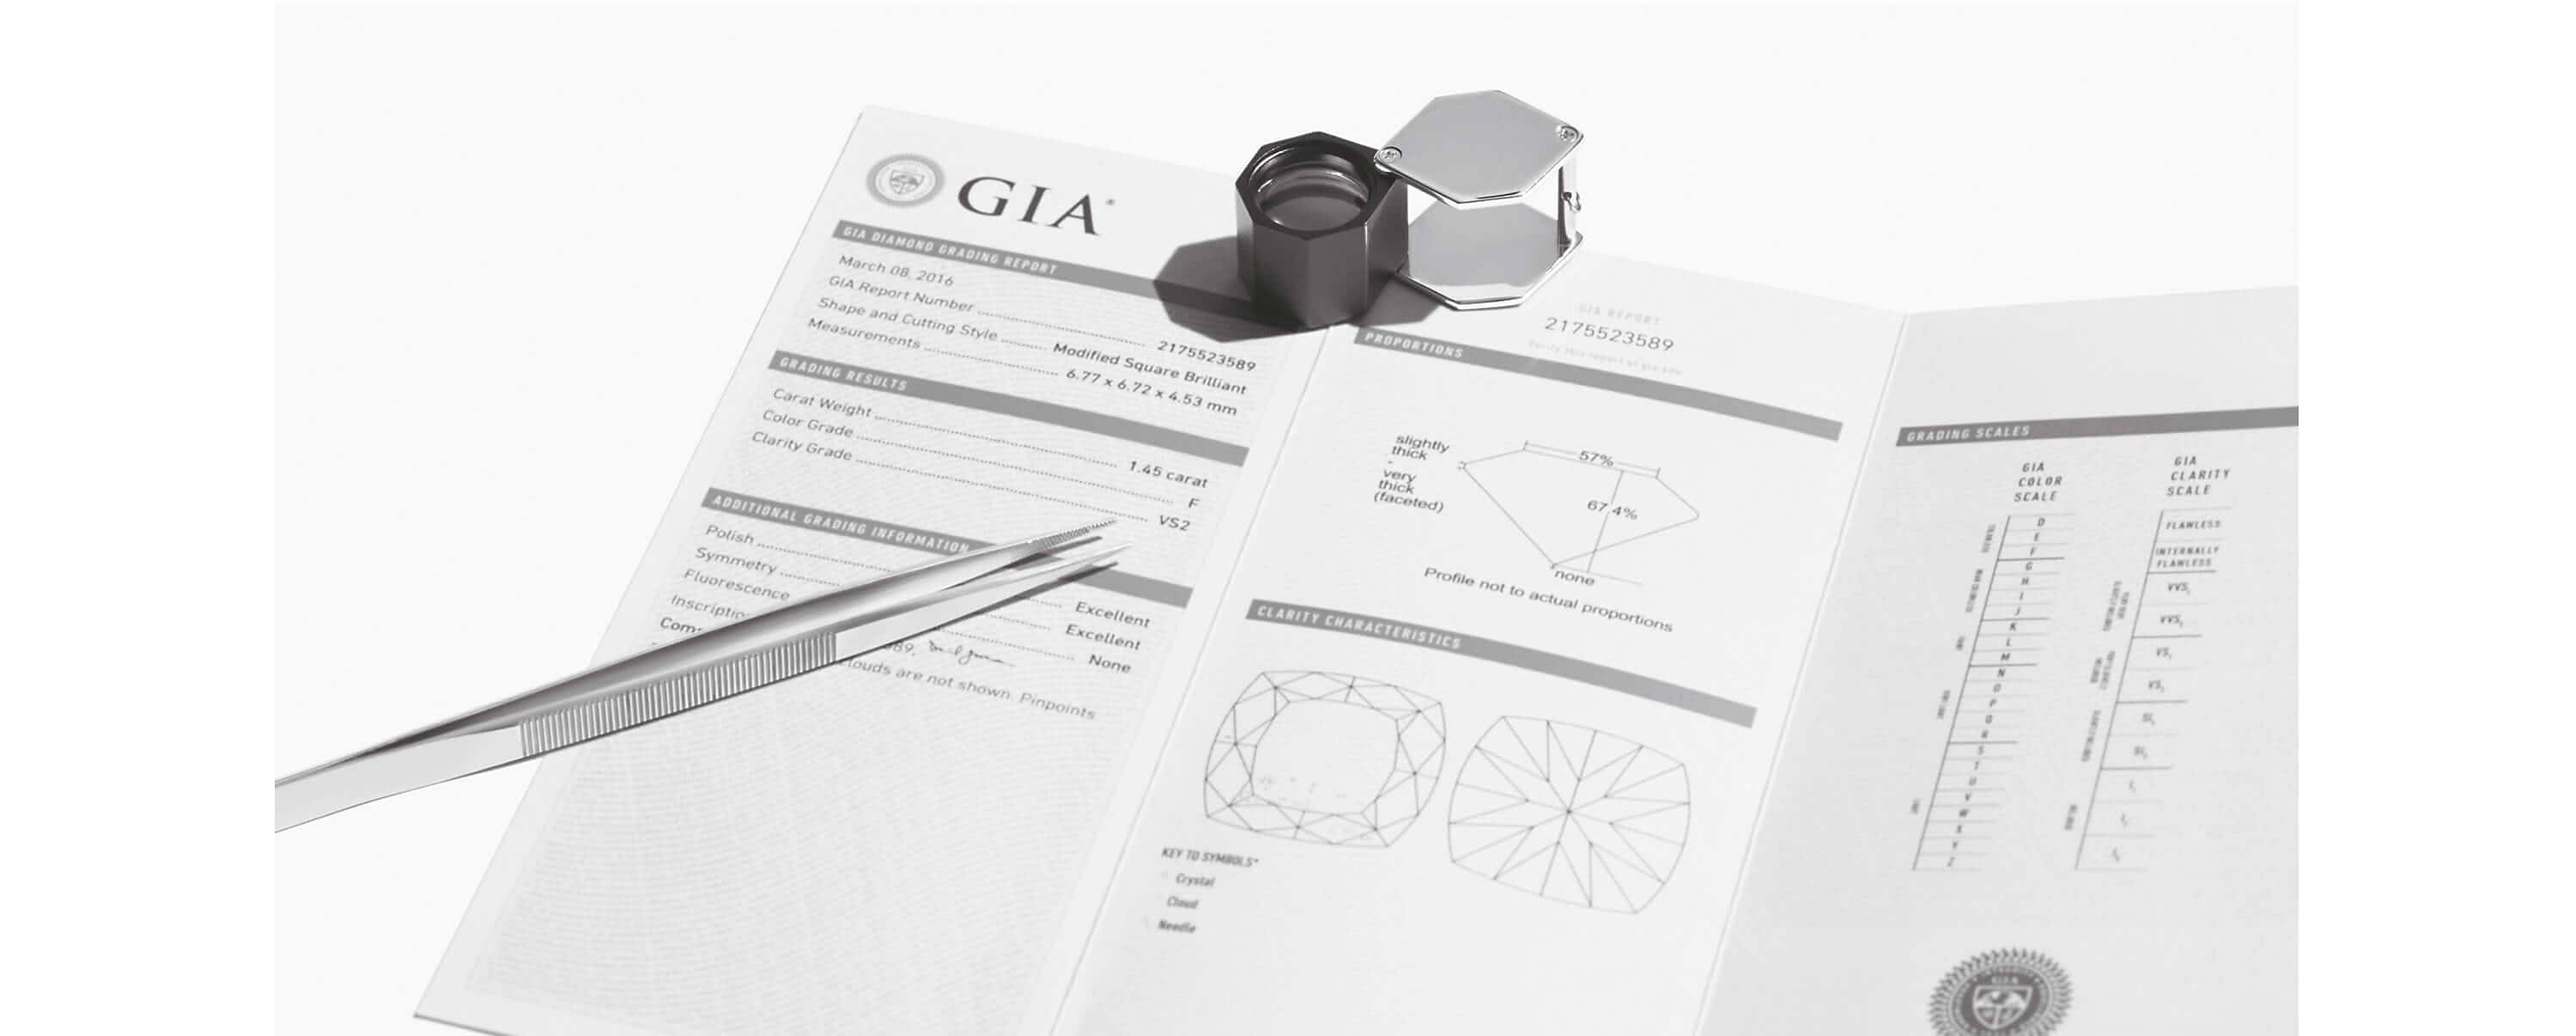 A GIA Diamond Report.